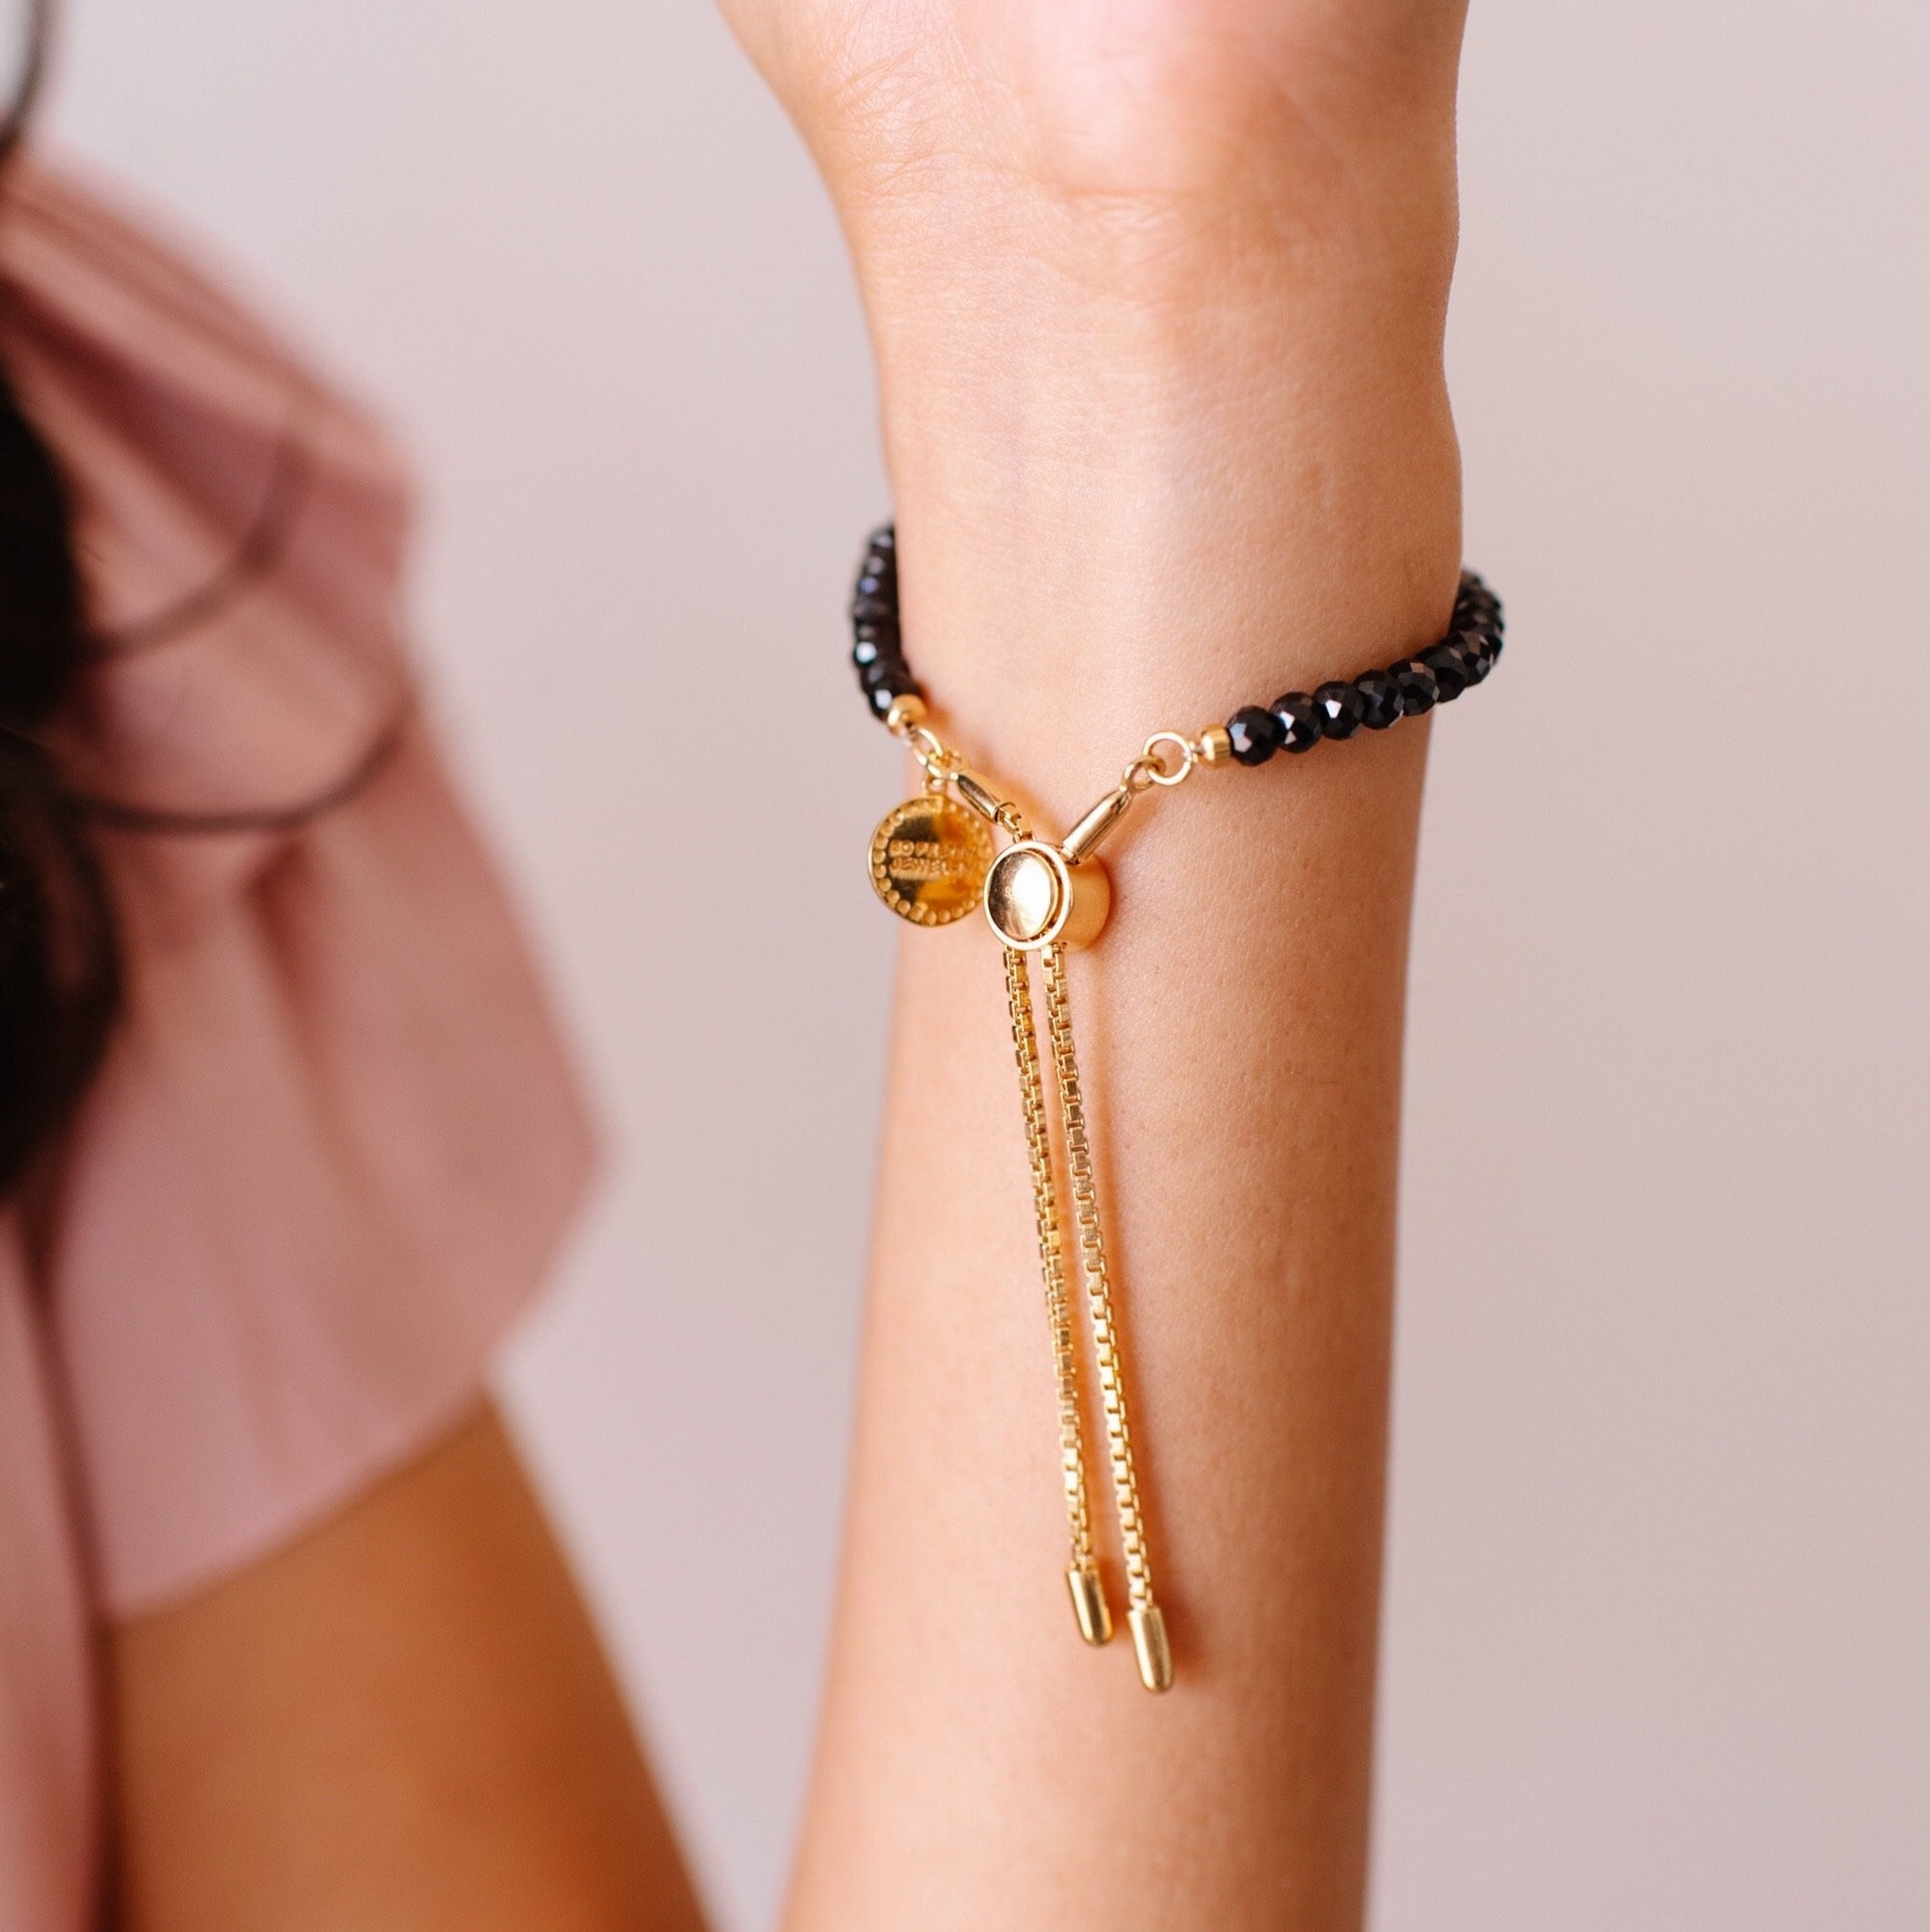 ICONIC ADJUSTABLE BRACELET - BLACK ONYX & GOLD - SO PRETTY CARA COTTER